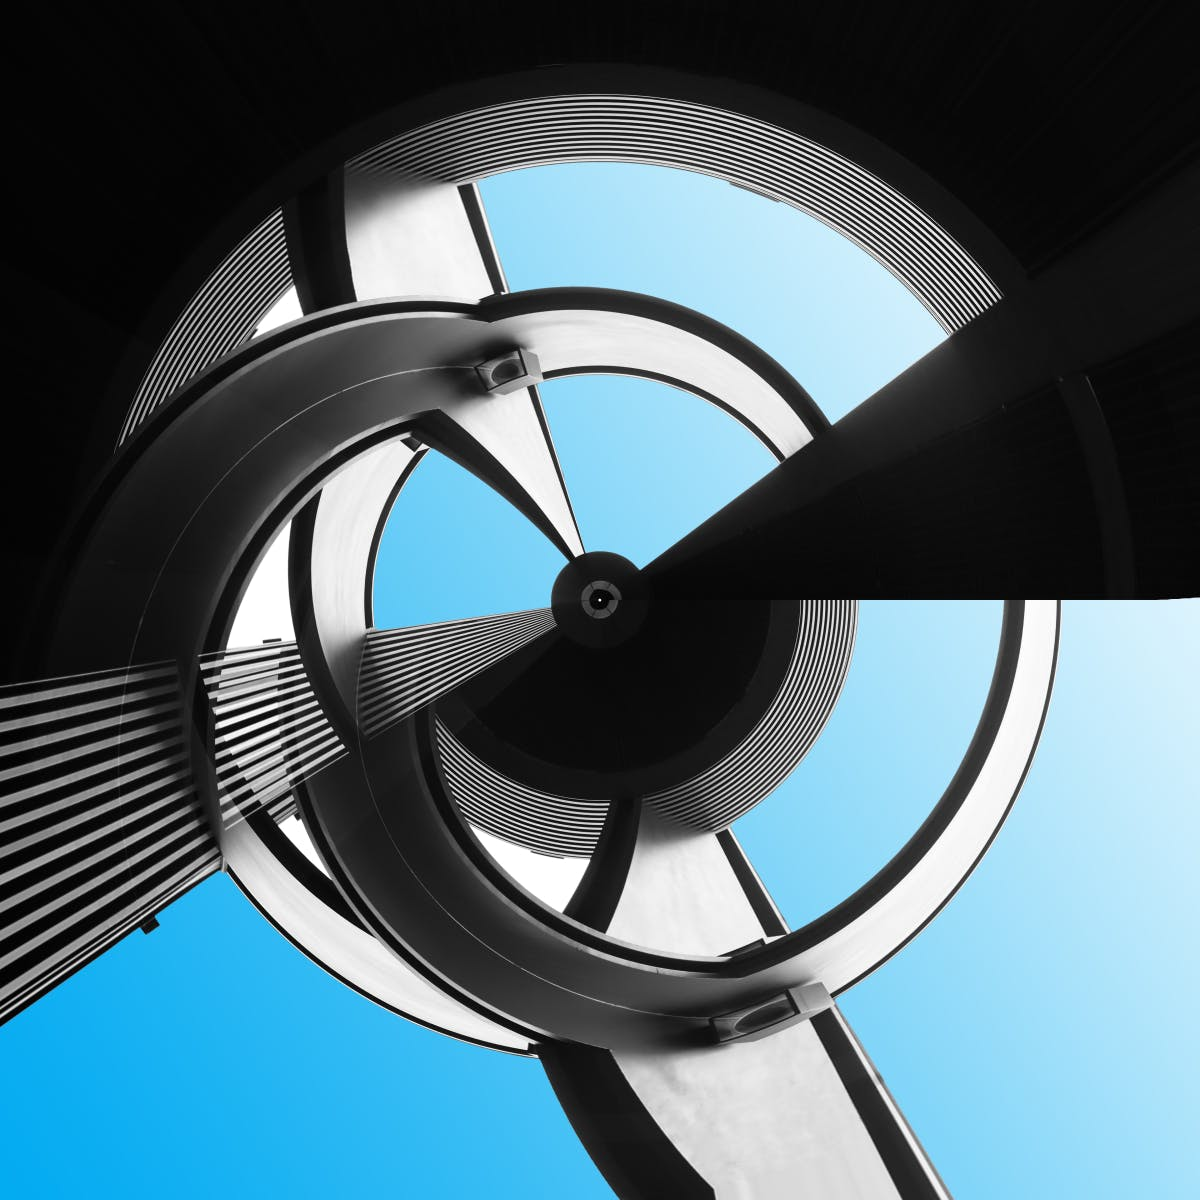 Sky visible through curvilinear structure of steel and glassers cover image